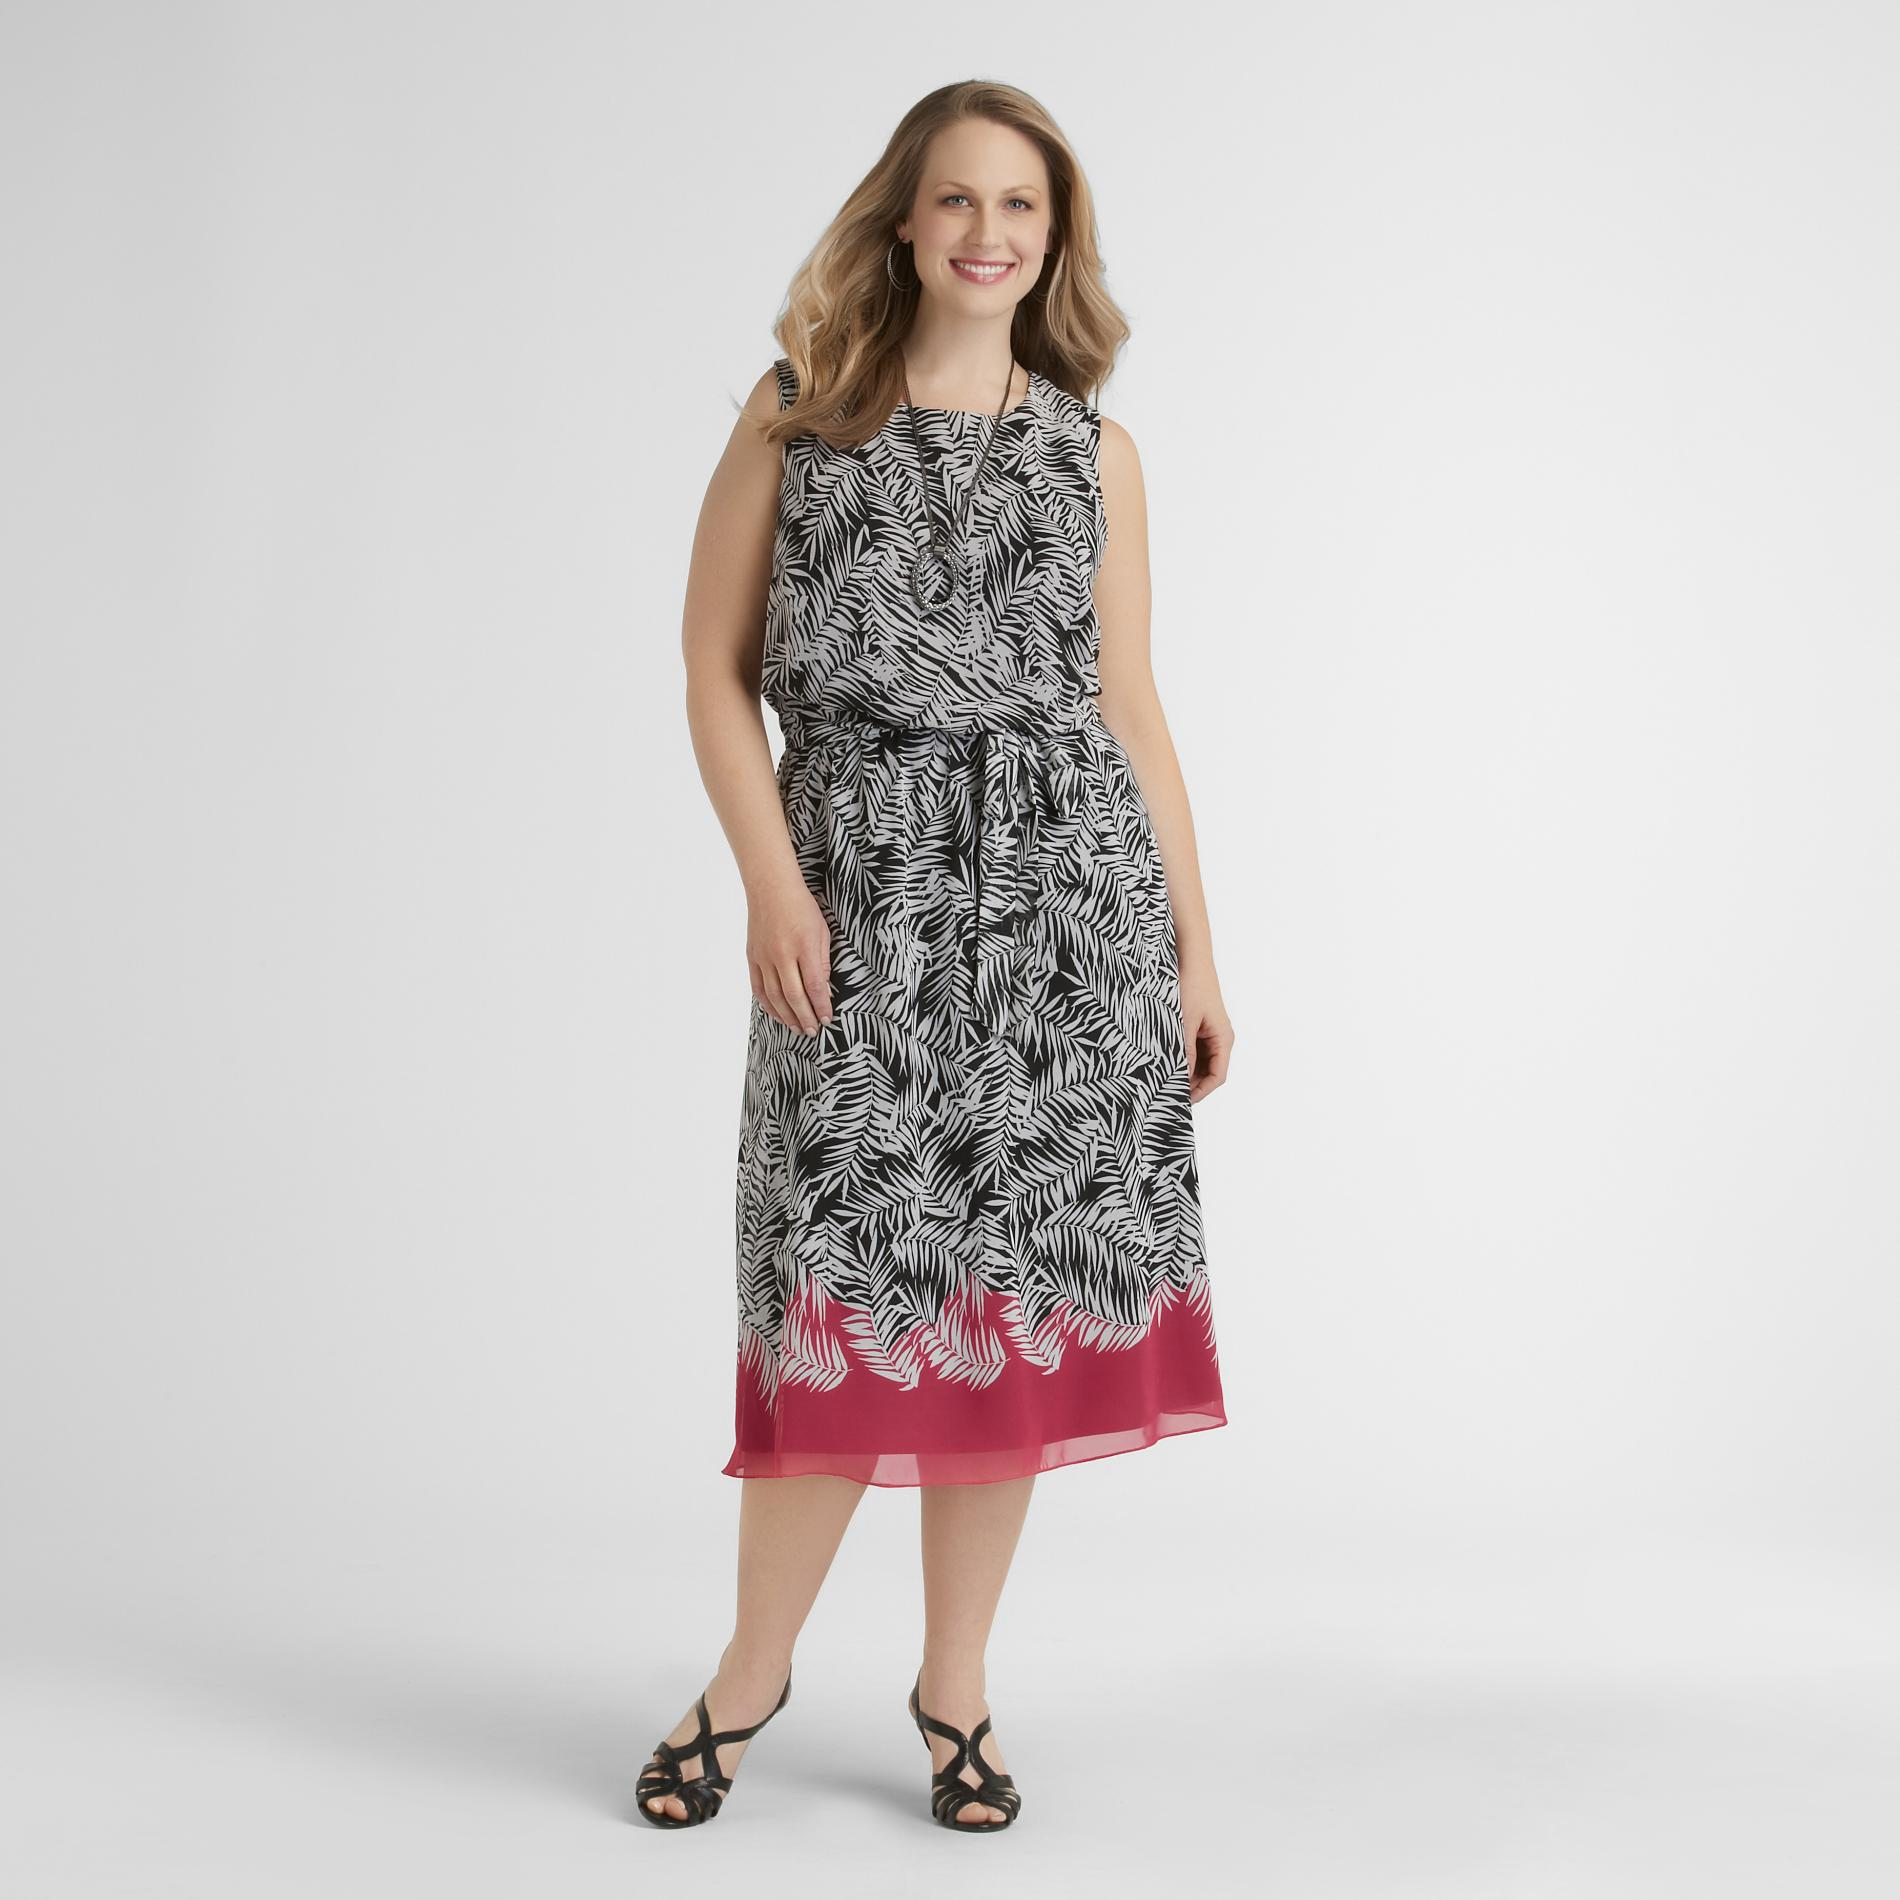 JBS Women's Plus Chiffon Dress - Palm at Sears.com